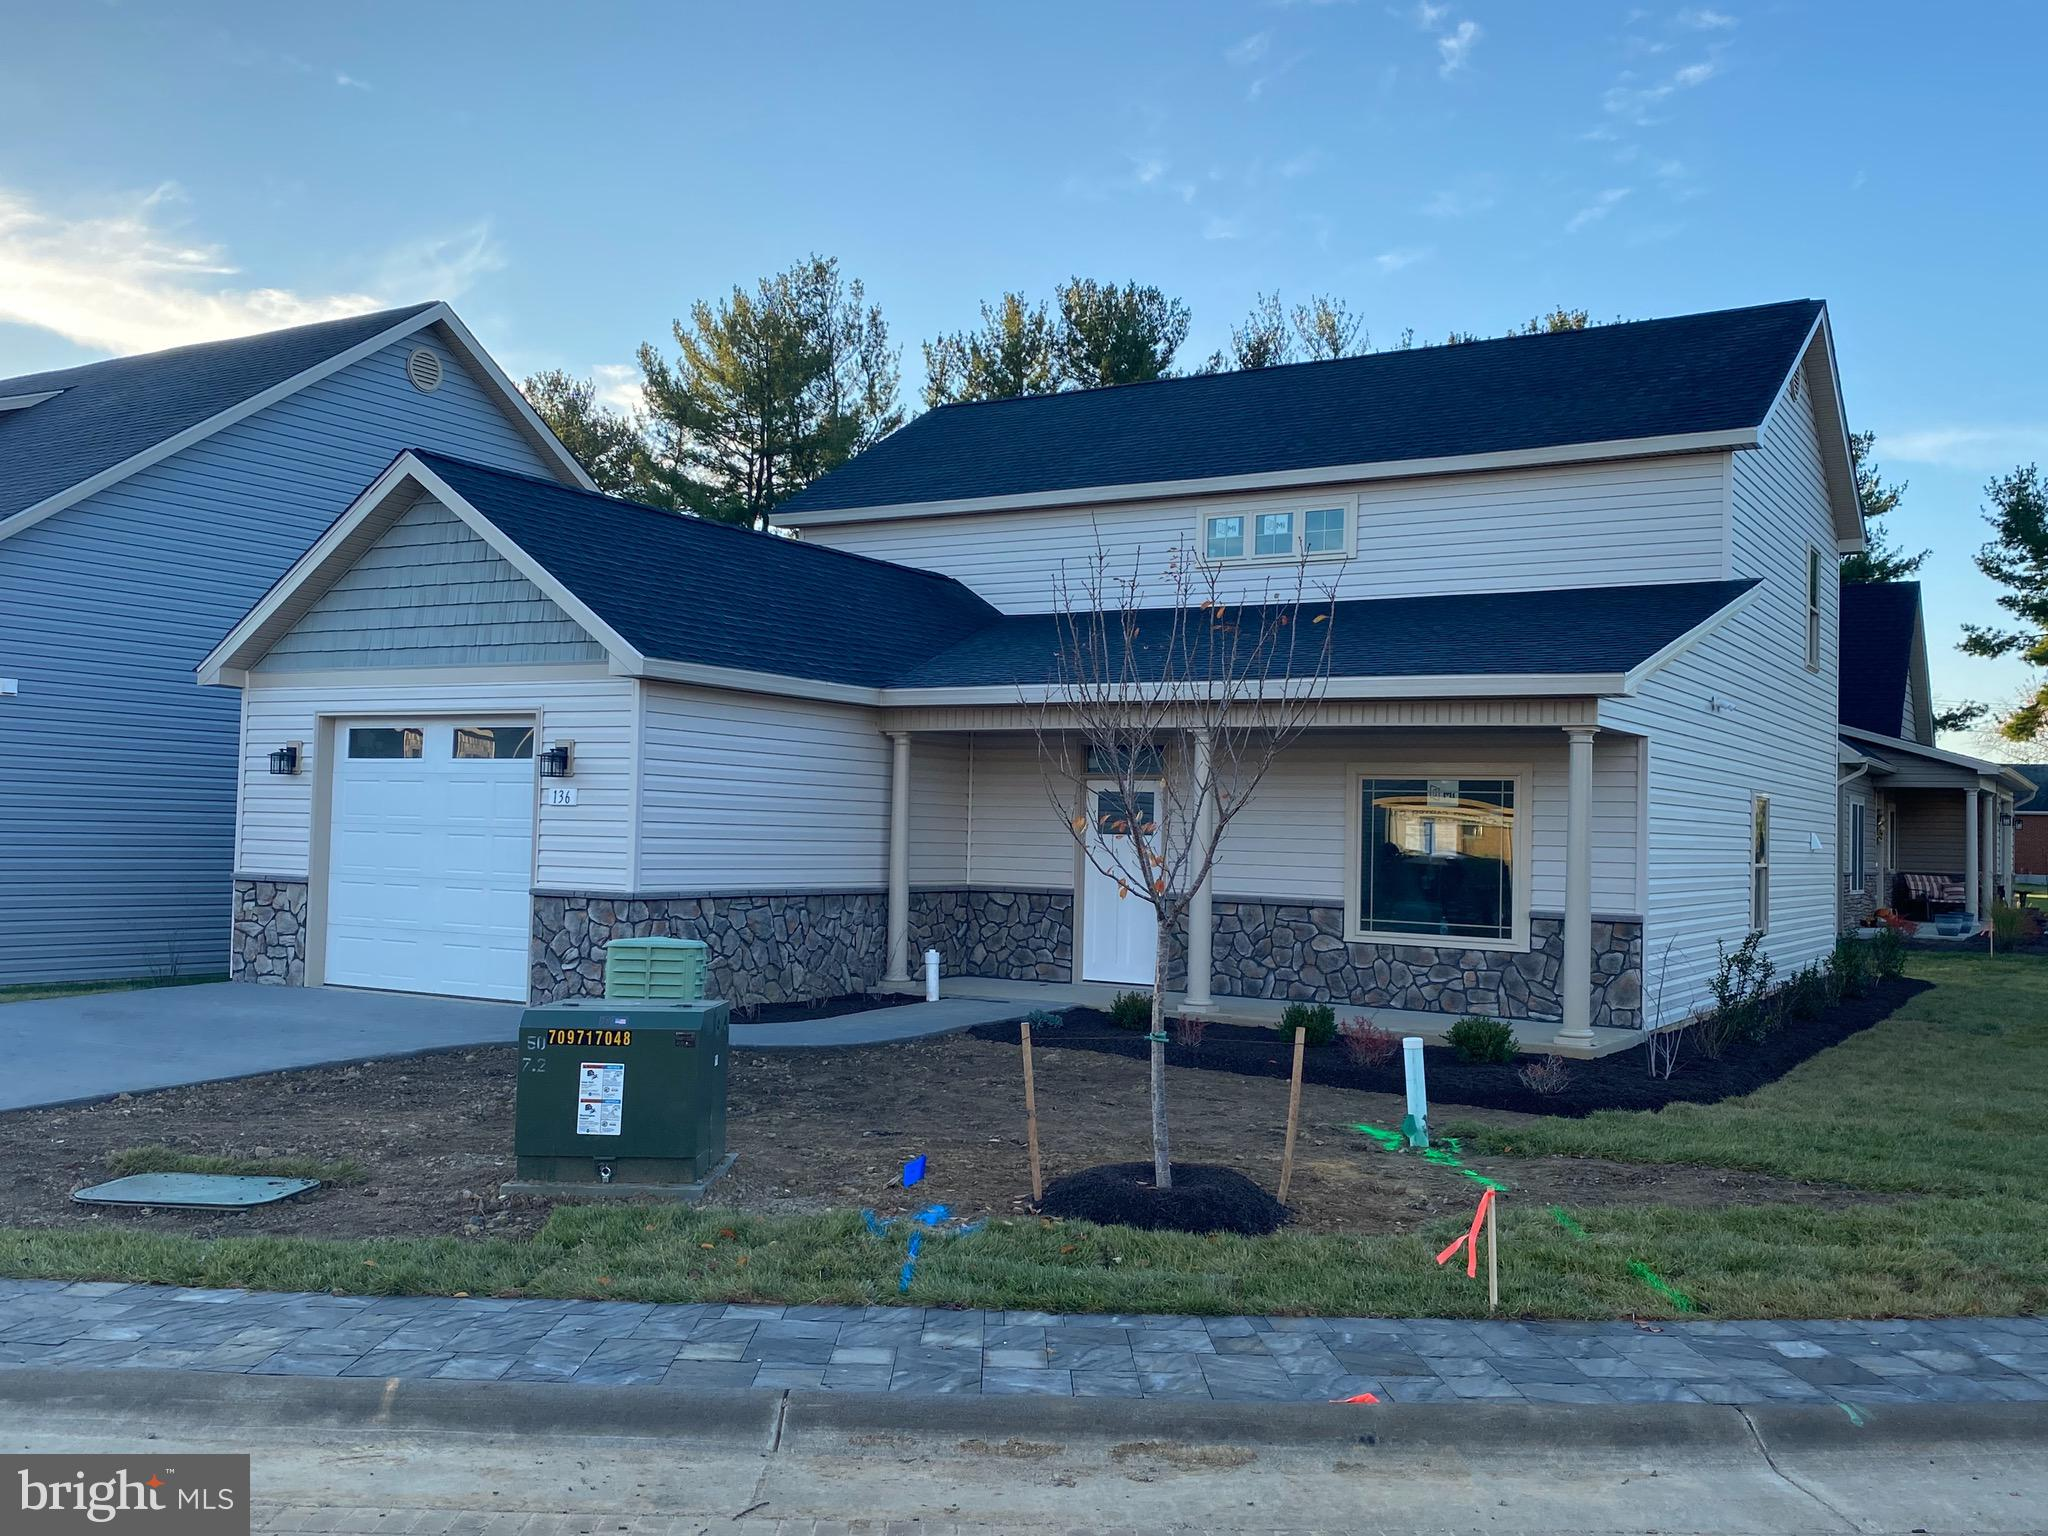 Brand New two story Cottage Style homes in Charming Cottage Glen an Age 55 and Better Community. Thr